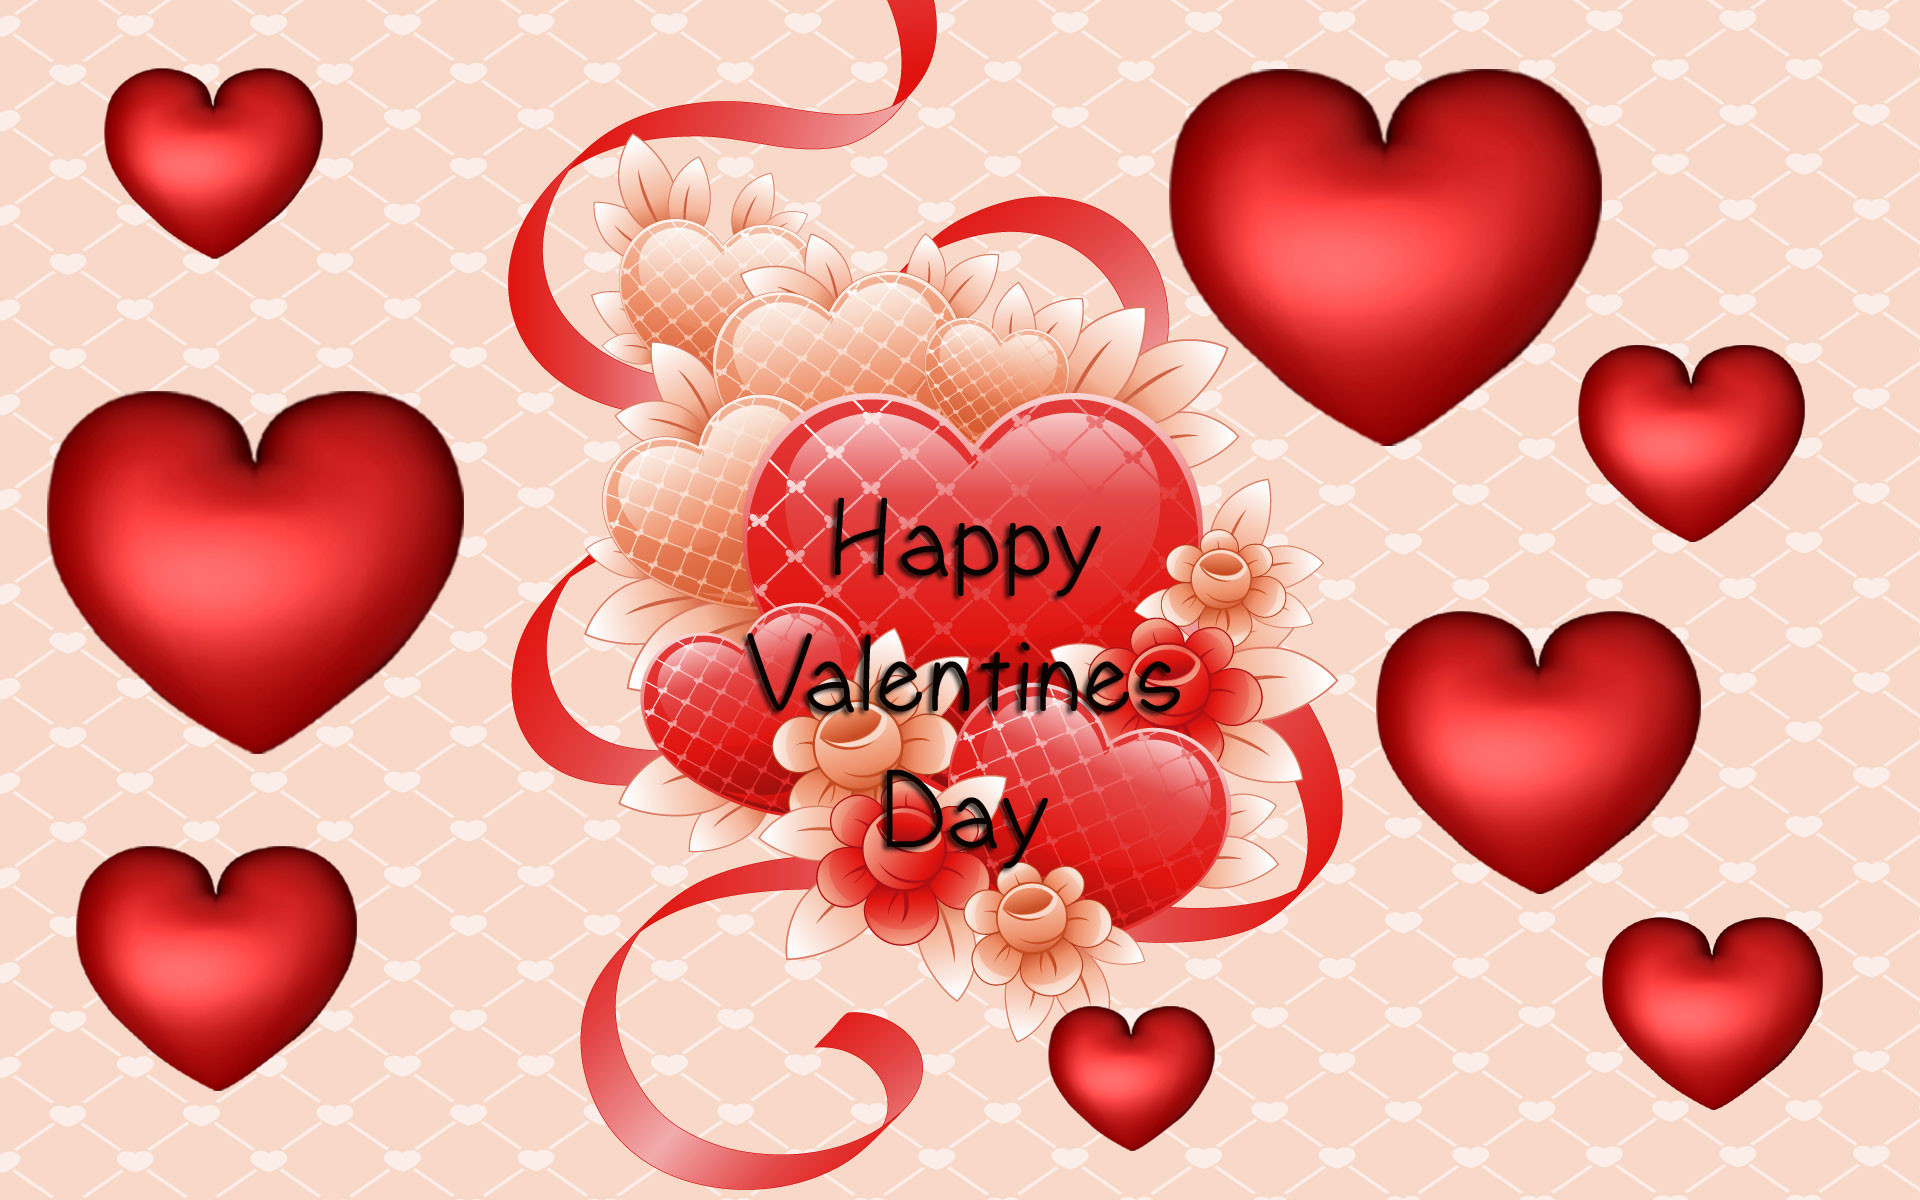 1920x1200 Download Valentine Day Desktop Wallpaper Photos #18414  px 327.89  KB Love